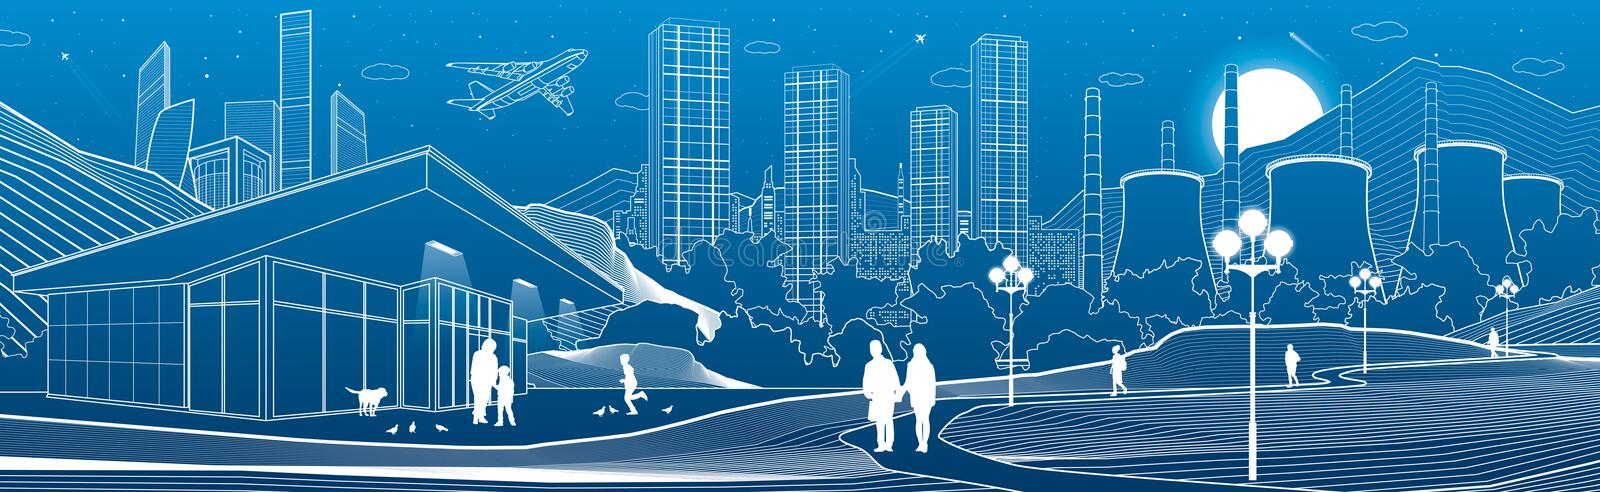 Outline industry and city illustration panorama. Evening town urban scene. People walking at garden. Night shop. Power Plant in mo royalty free illustration